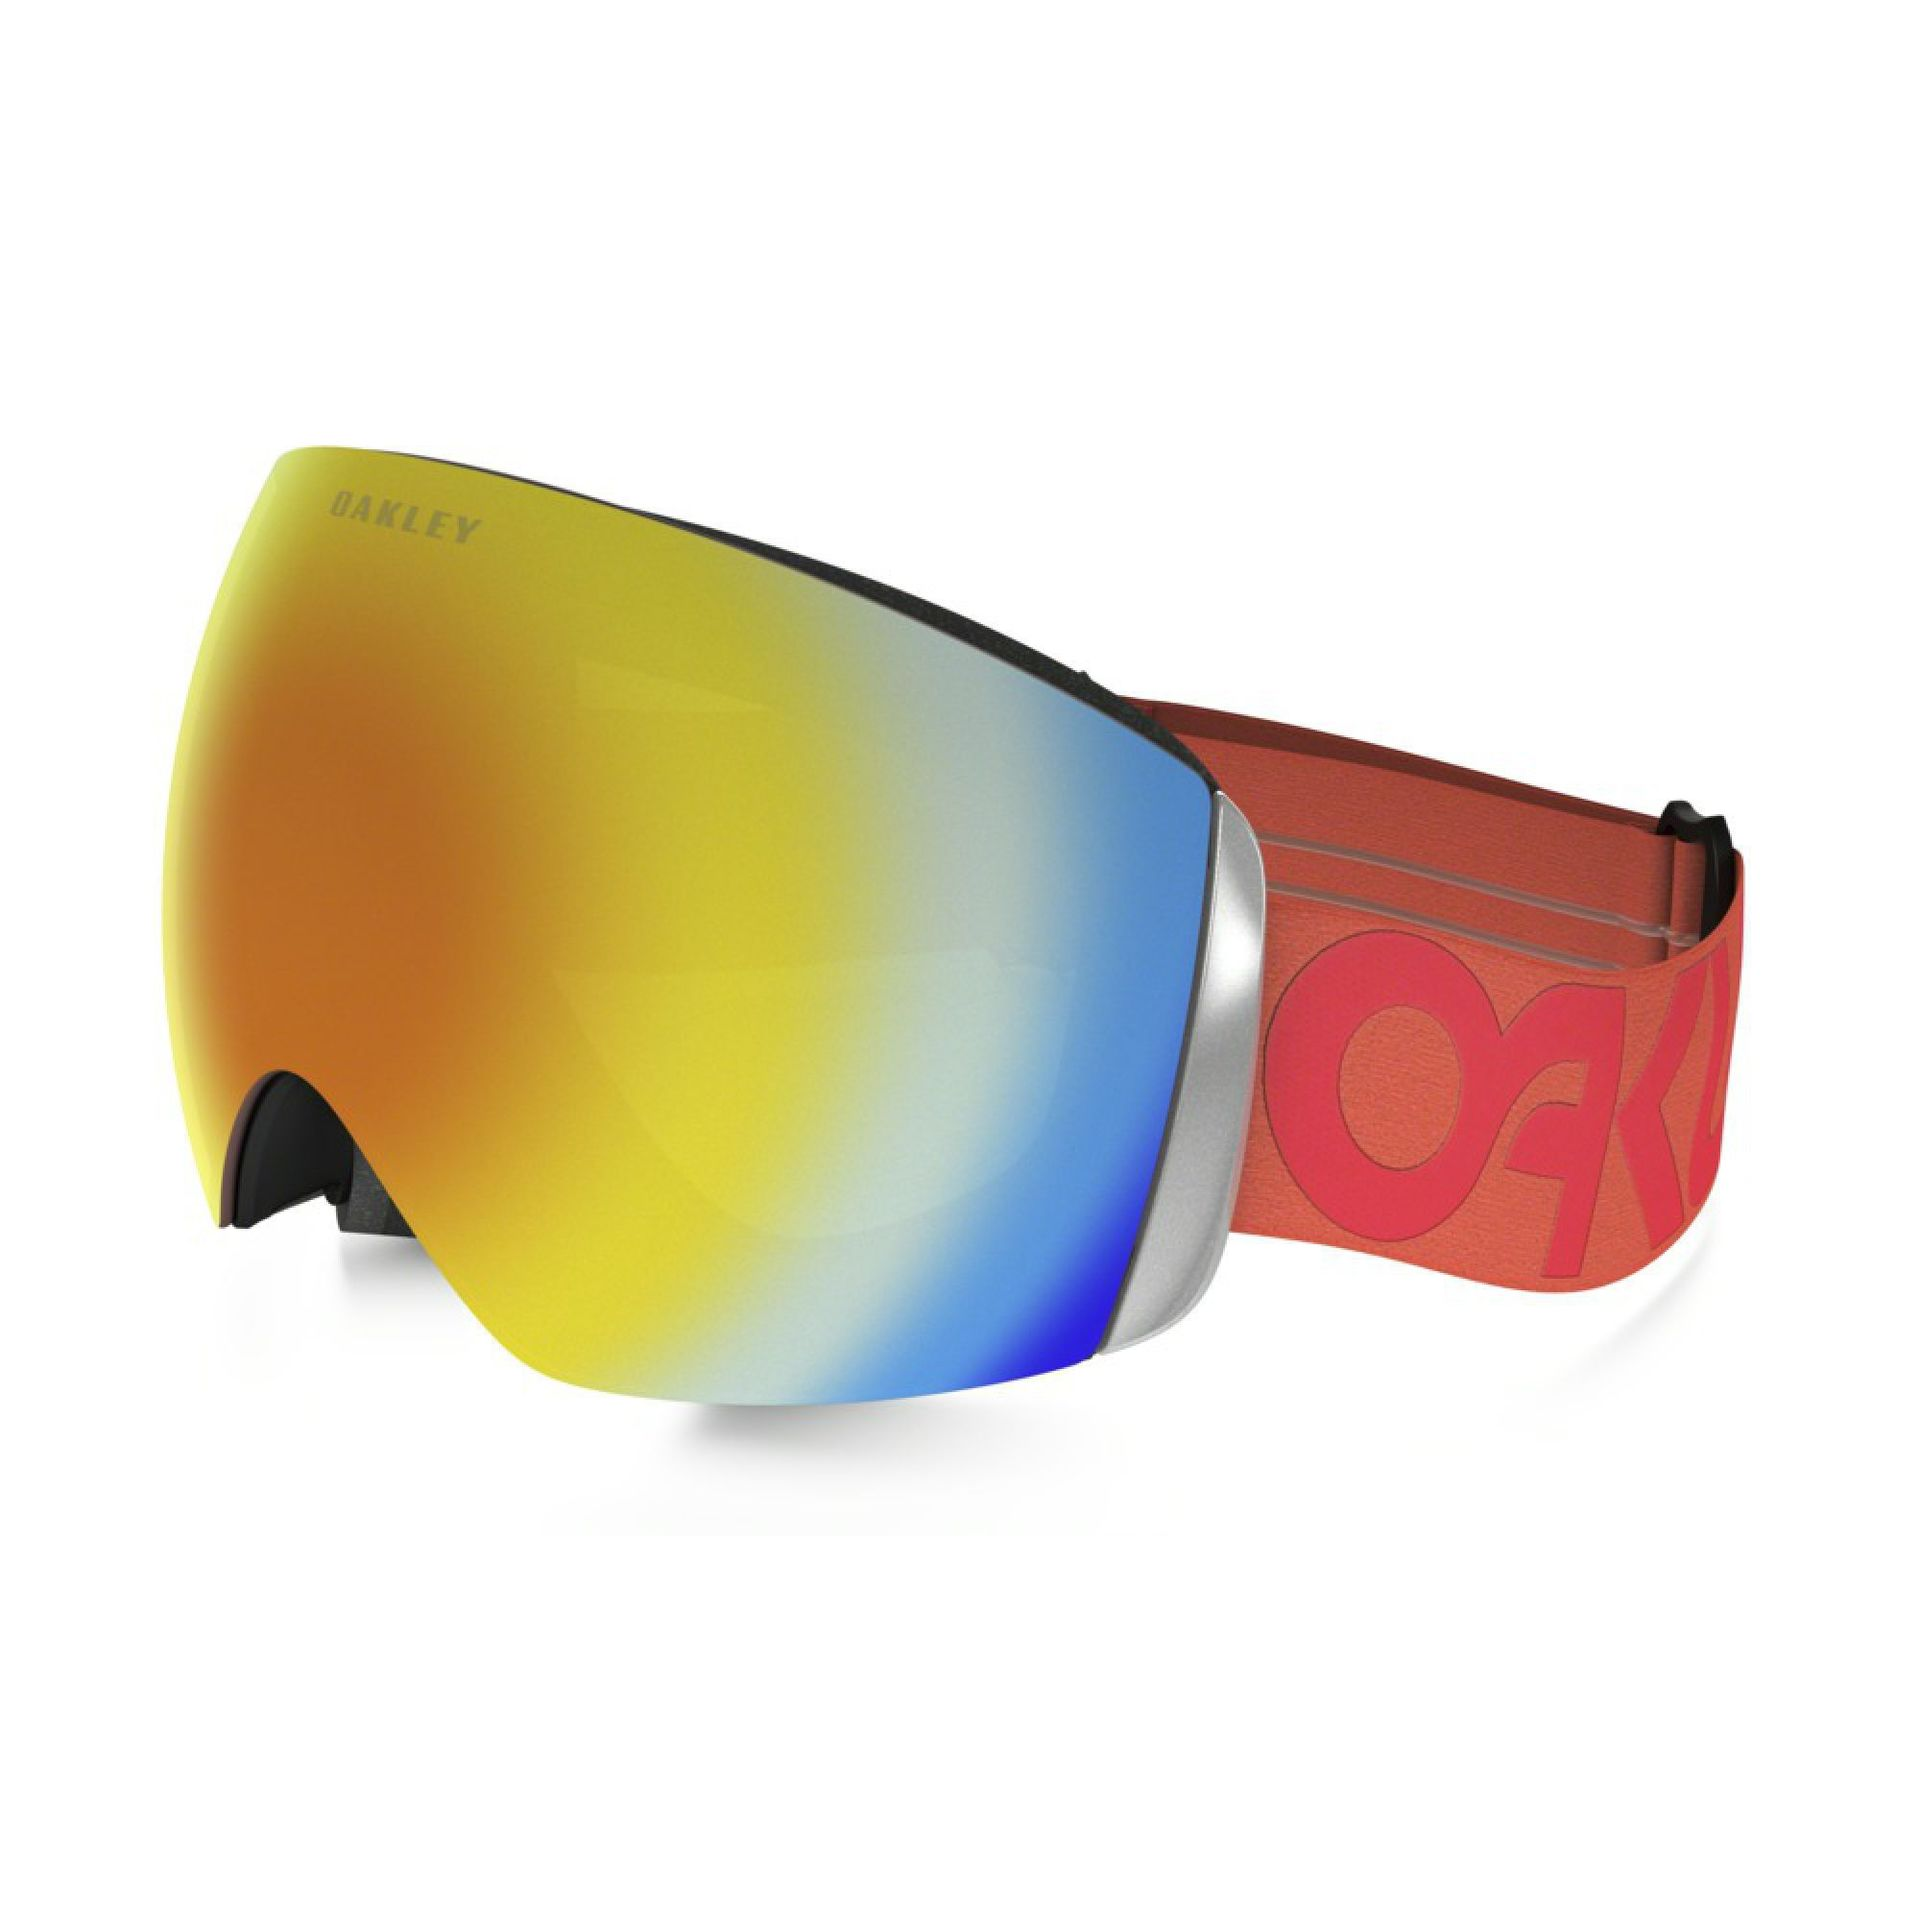 GOGLE OAKLEY FLIGHT DECK FACTORY PILOT FIRE RED FIRE IRIDIUM